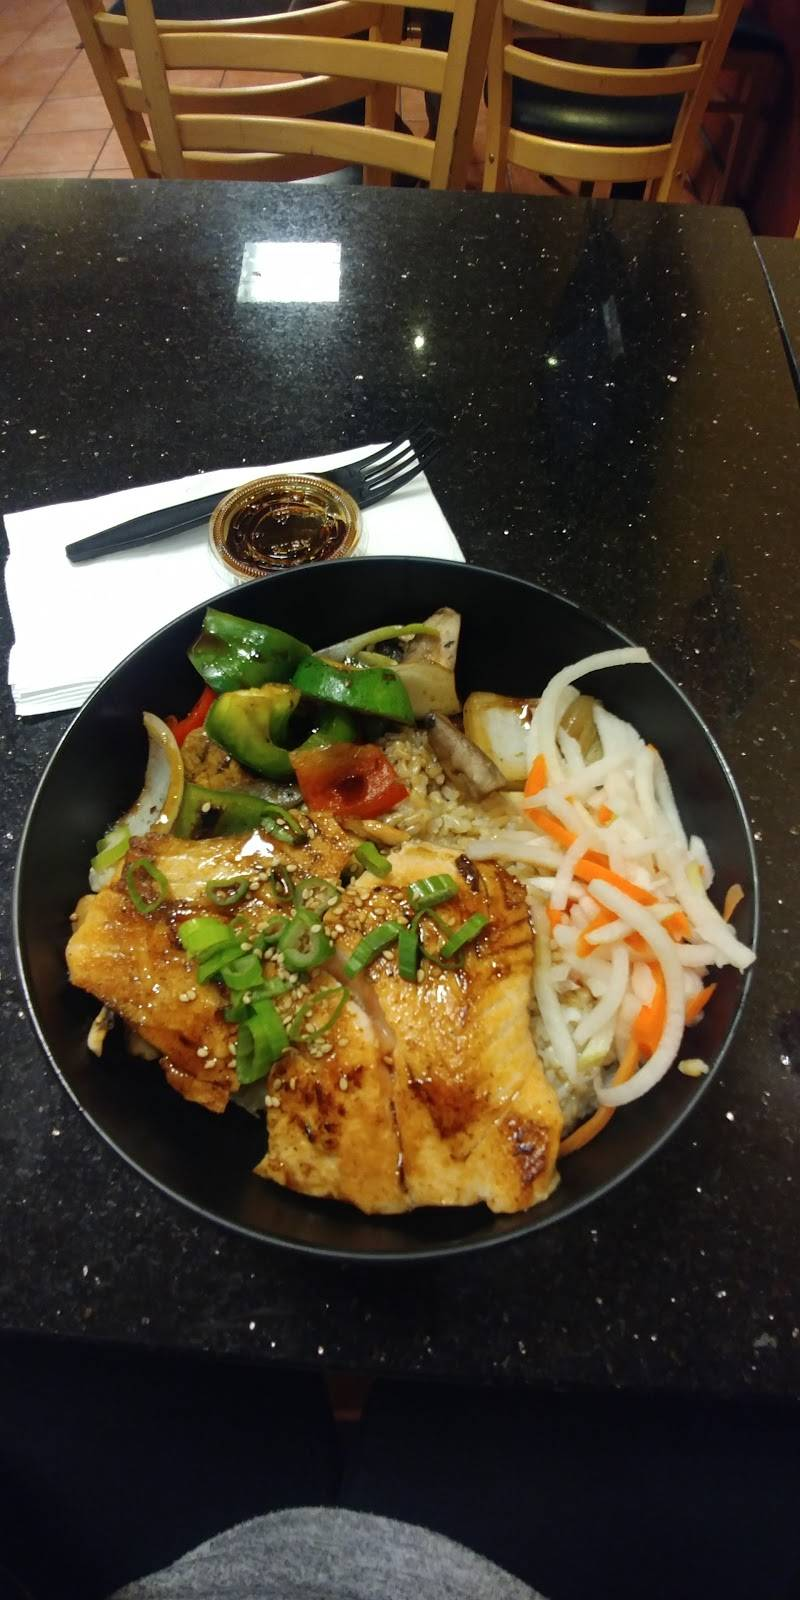 The Bowl Asian Kitchen - restaurant  | Photo 5 of 5 | Address: 12430 Day St STE C3, Moreno Valley, CA 92553, USA | Phone: (951) 697-7707